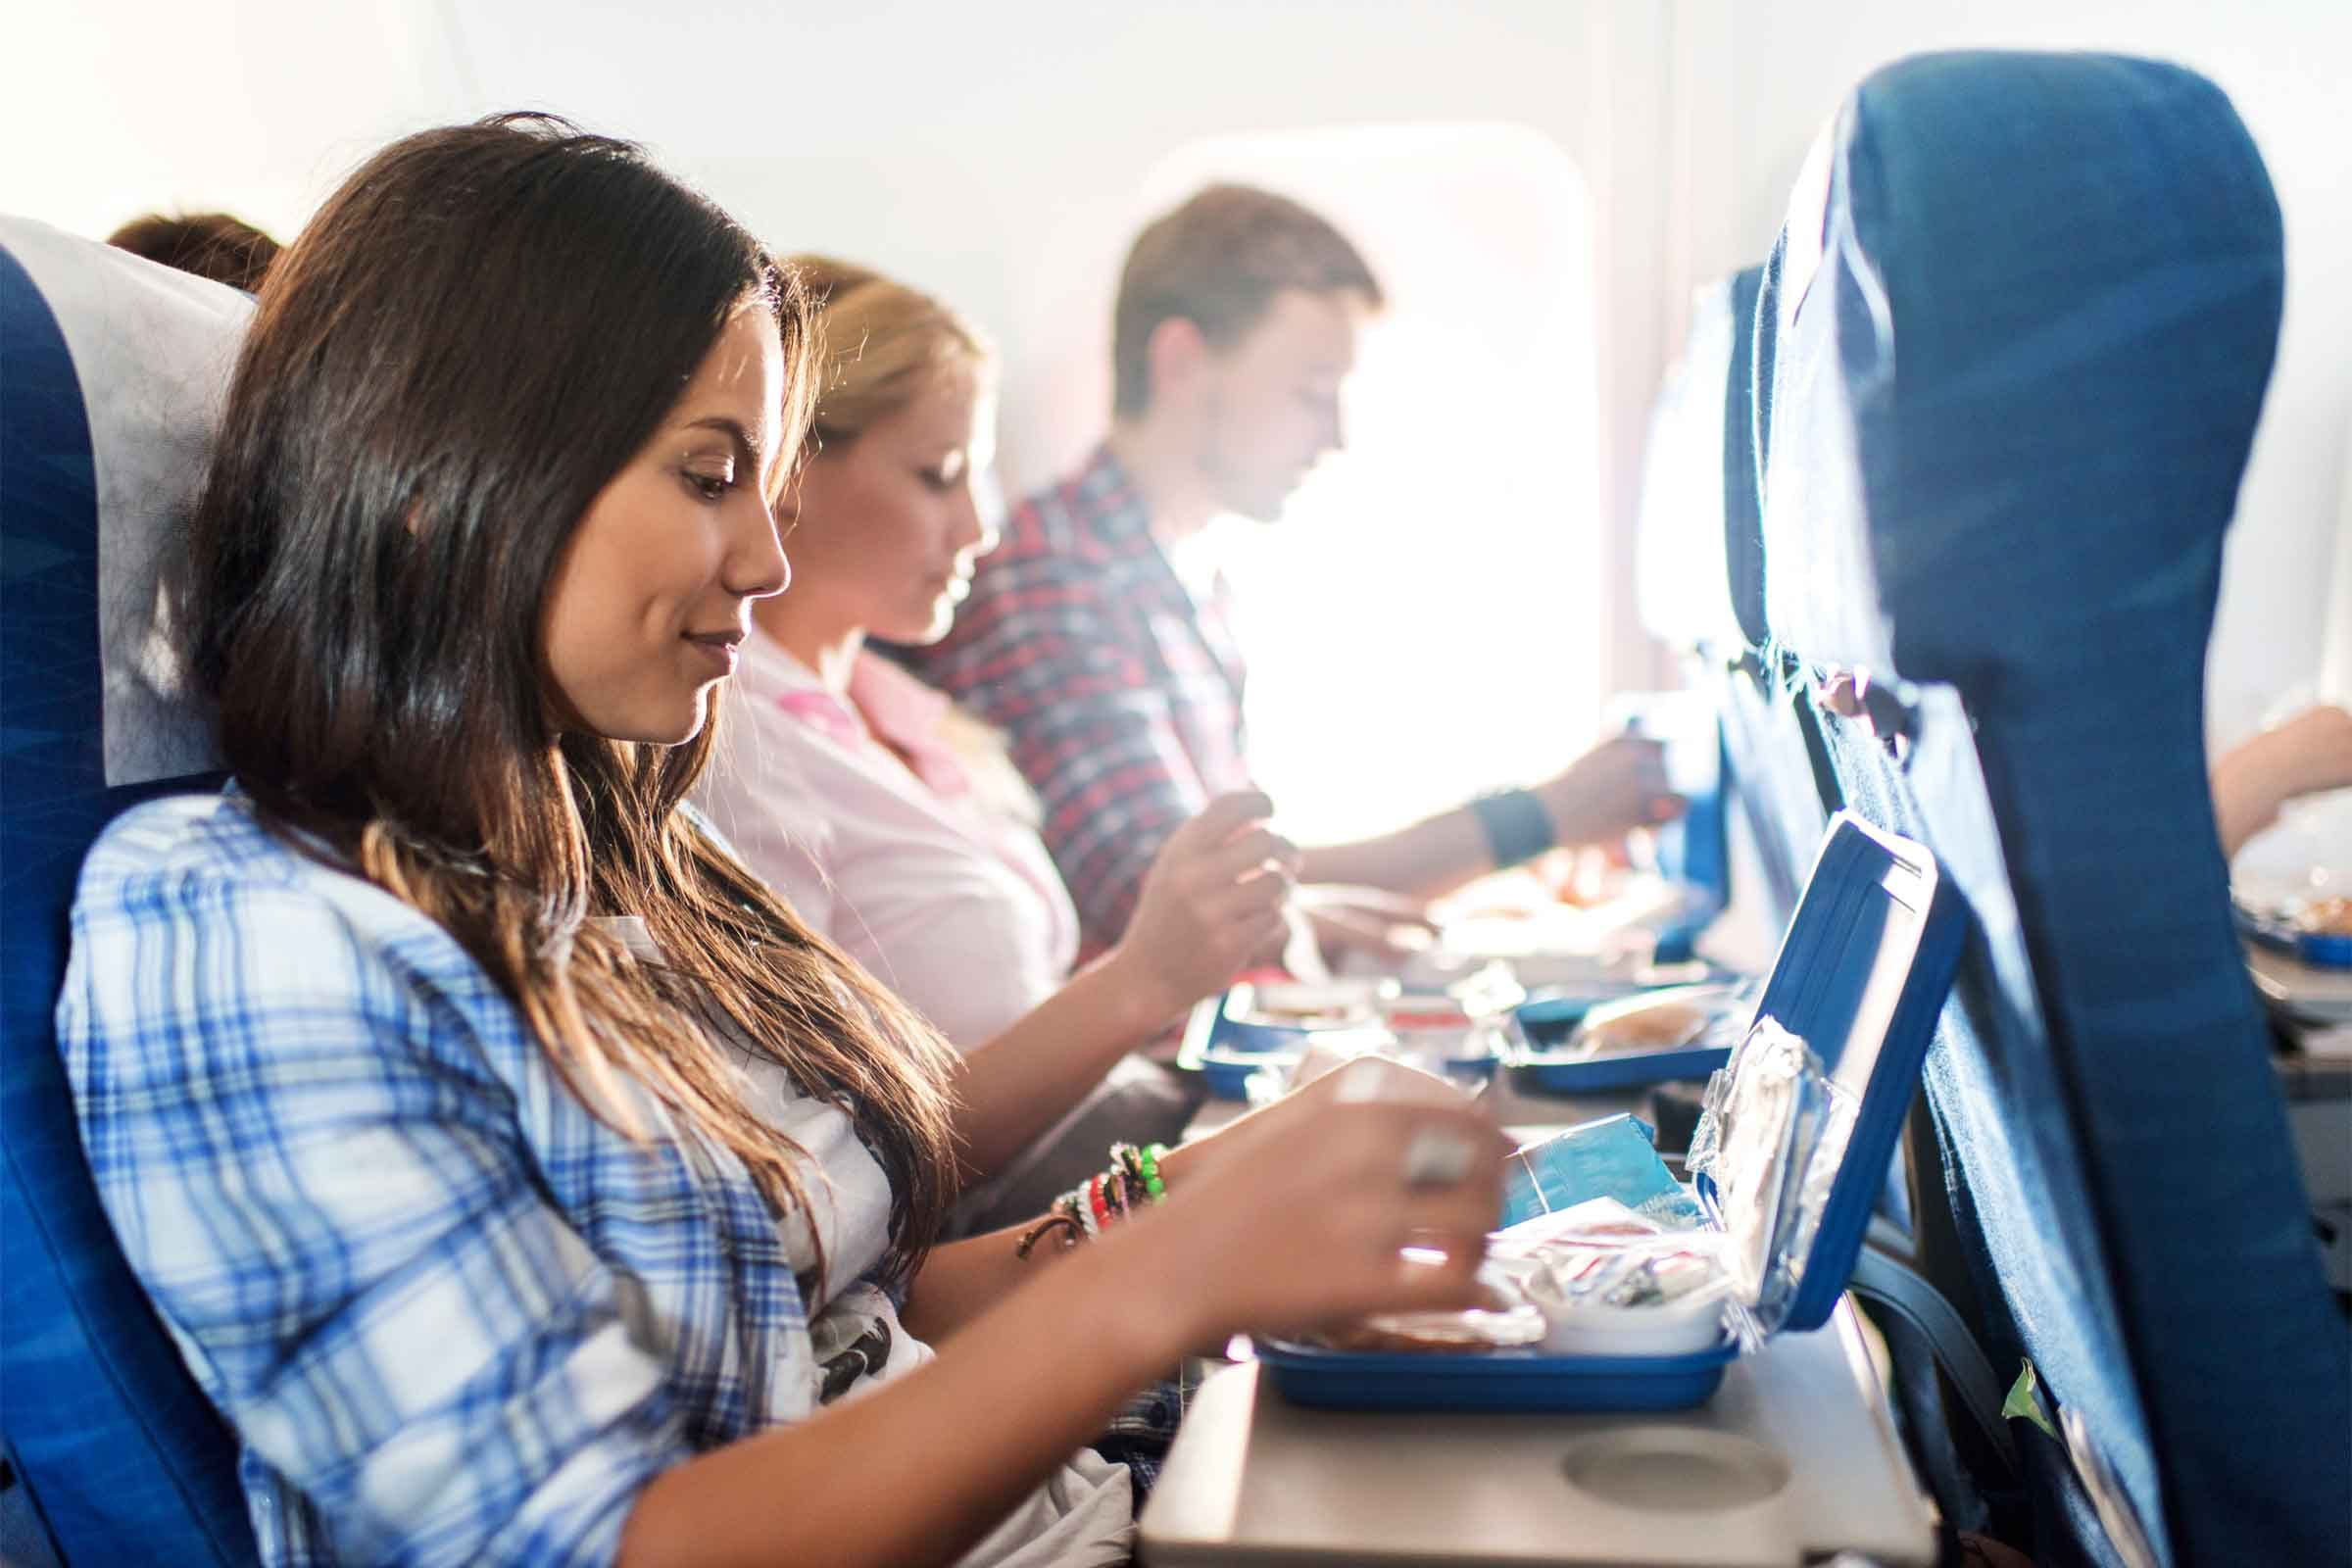 Can You Take Food To Eat On An Airplane